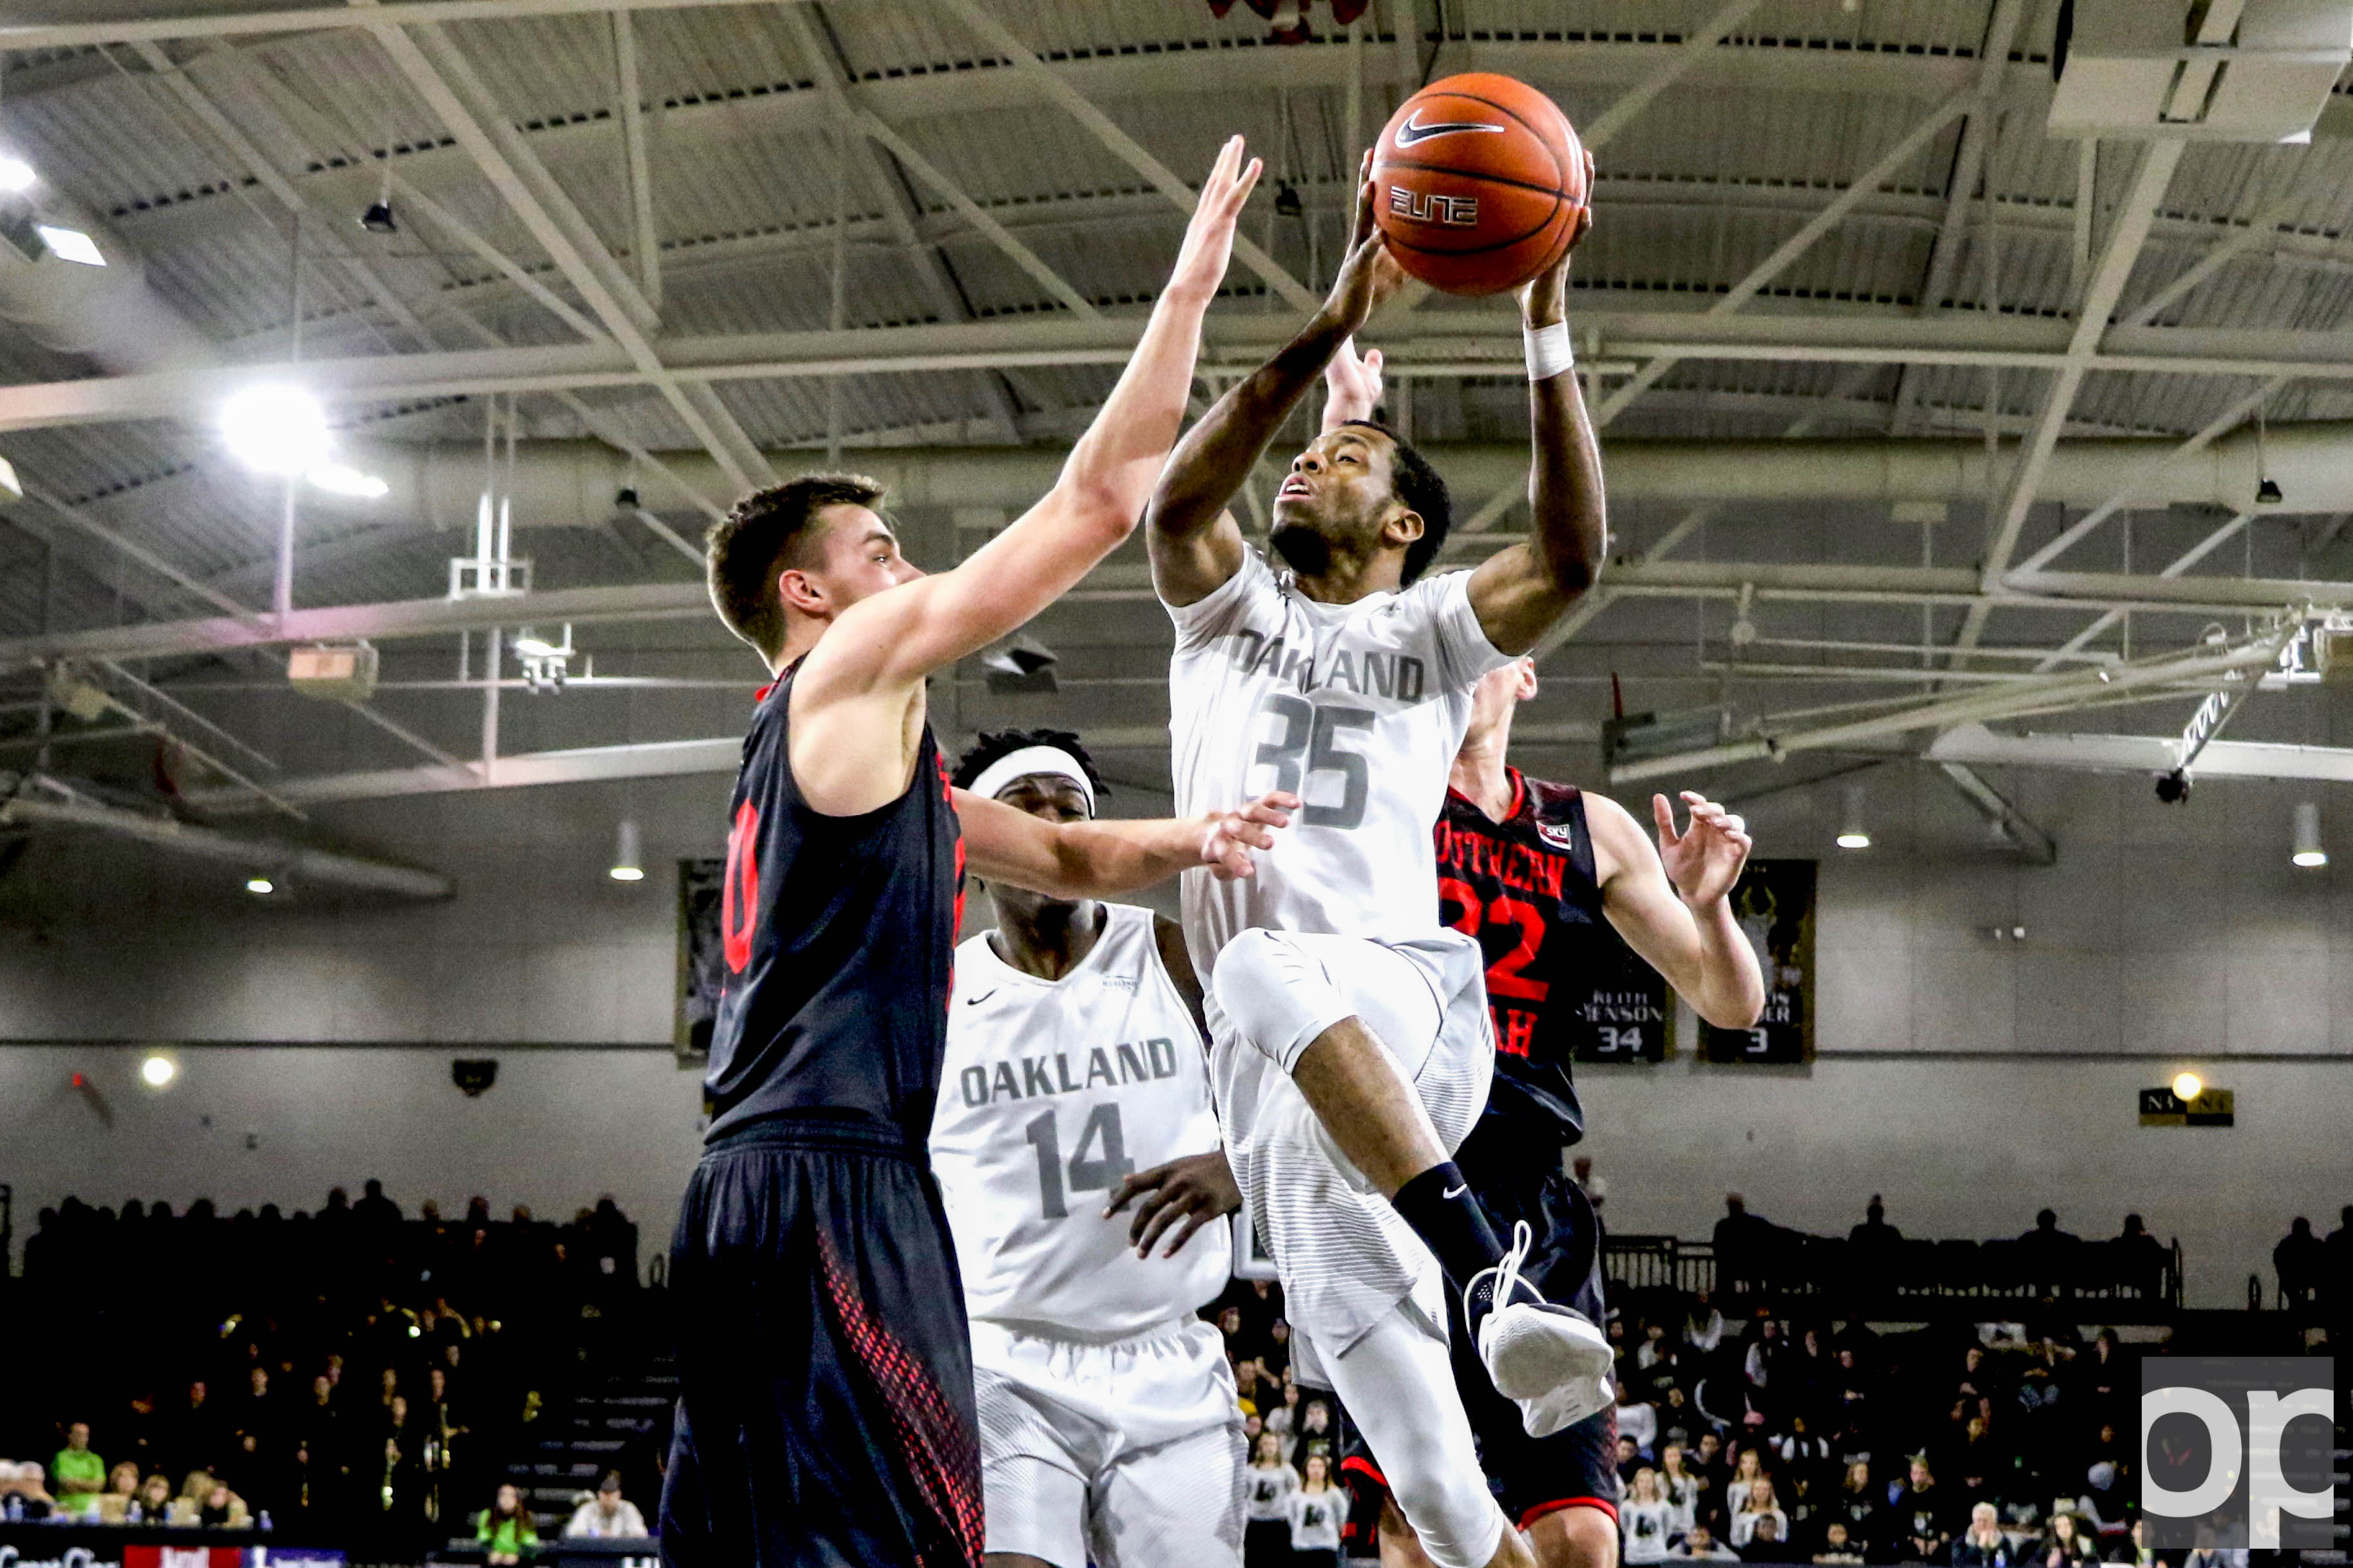 Martez Walker led Oakland with 19 points Saturday evening at the O'rena against Southern Utah University. Oakland won 78-68 to extend its record to 6-0 at home.